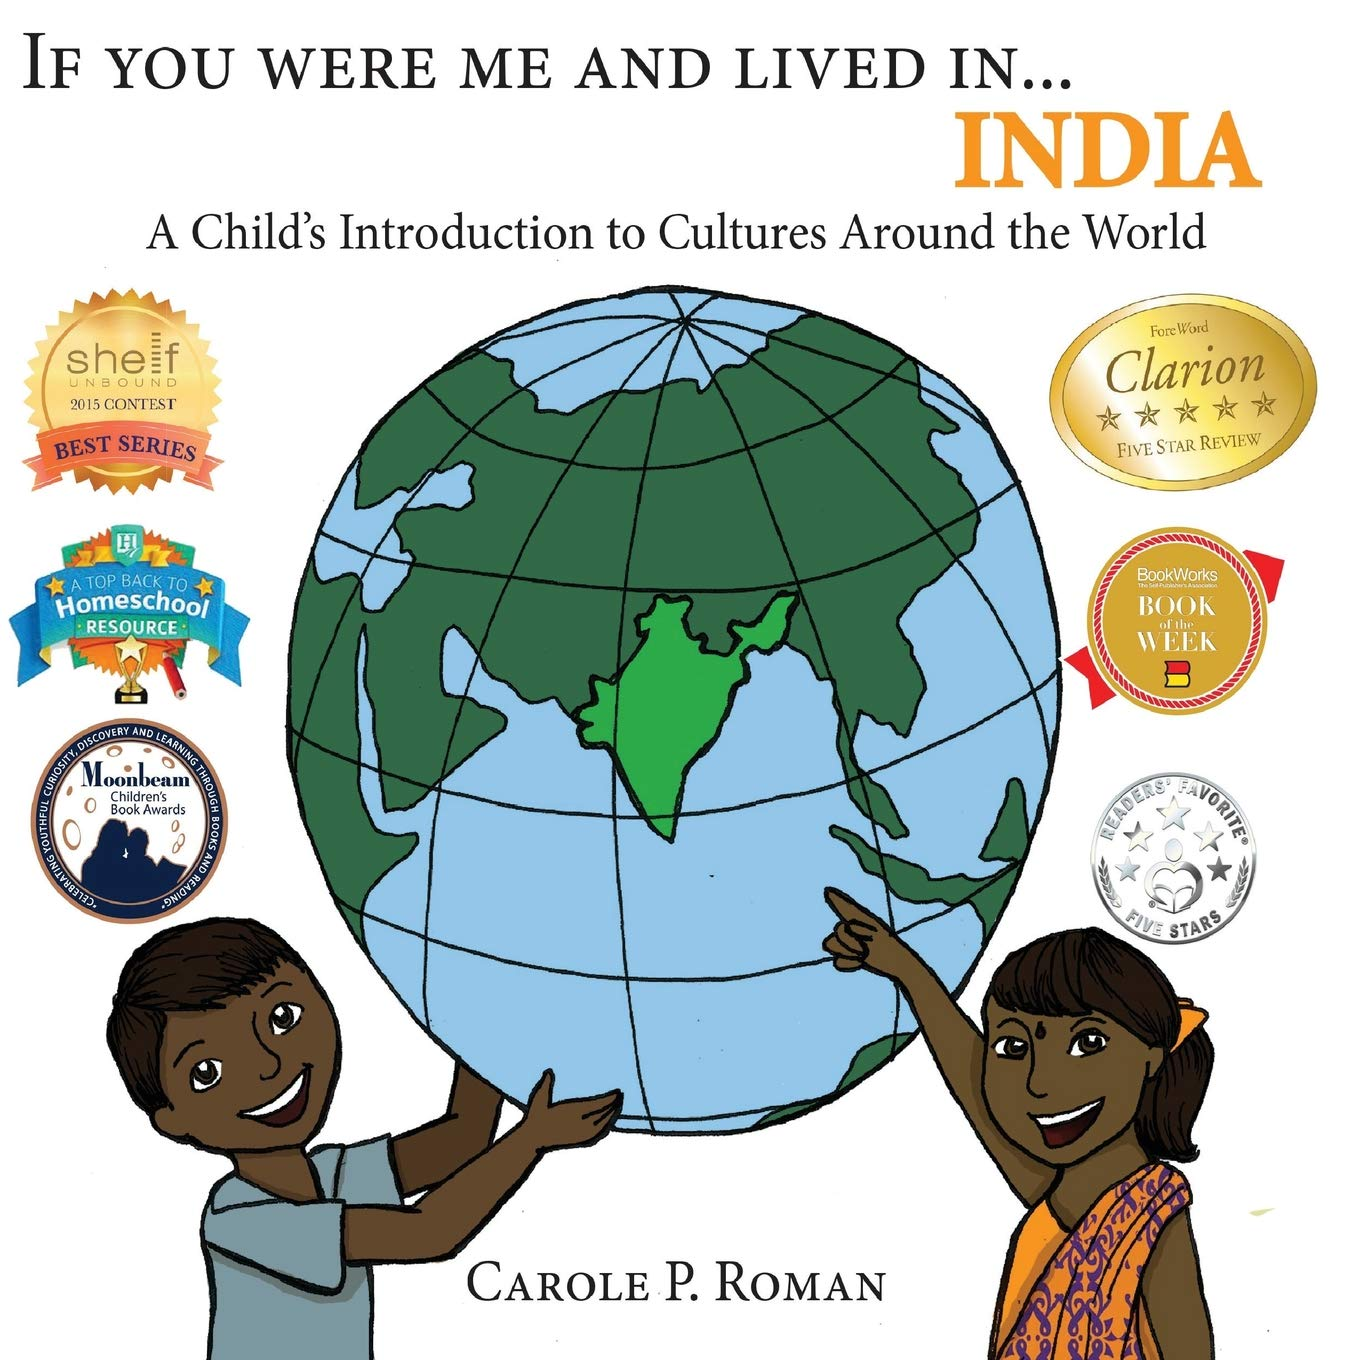 A Childs Introduction to Cultures Around the World If You Were Me and Lived in...India